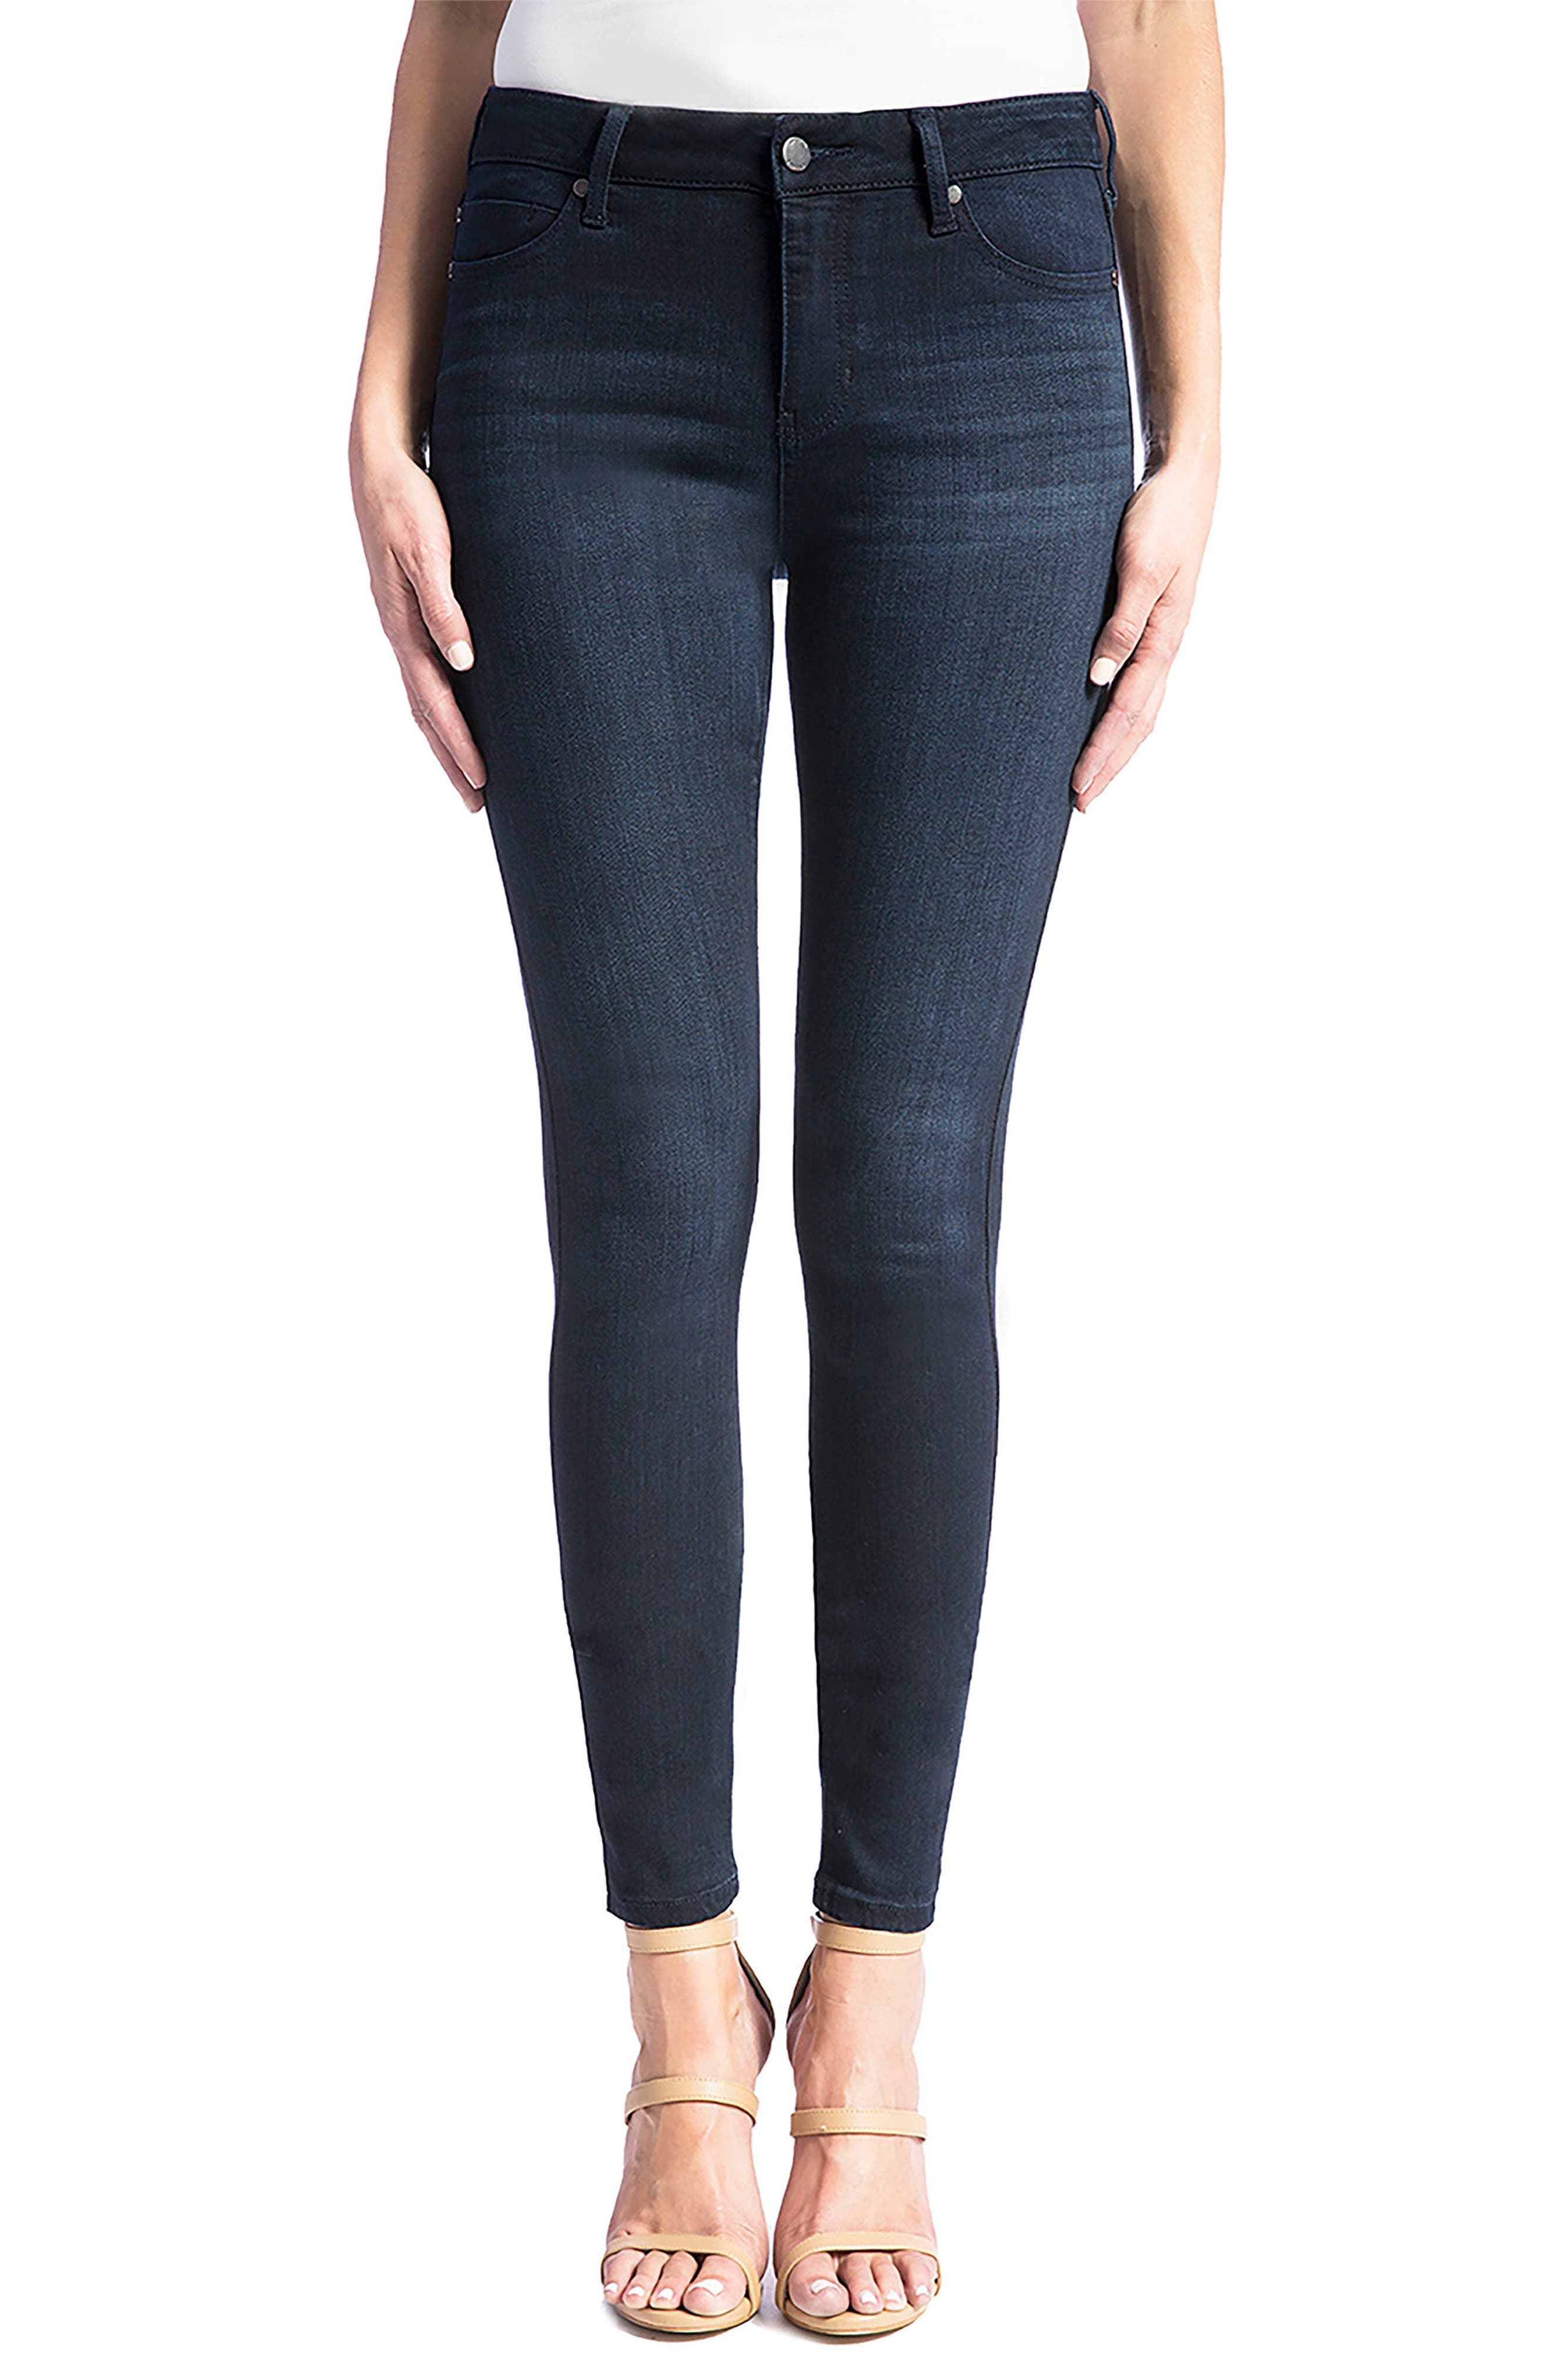 Liverpool Jeans Co. Abby Stretch Skinny Jeans (Stone) (Petite)